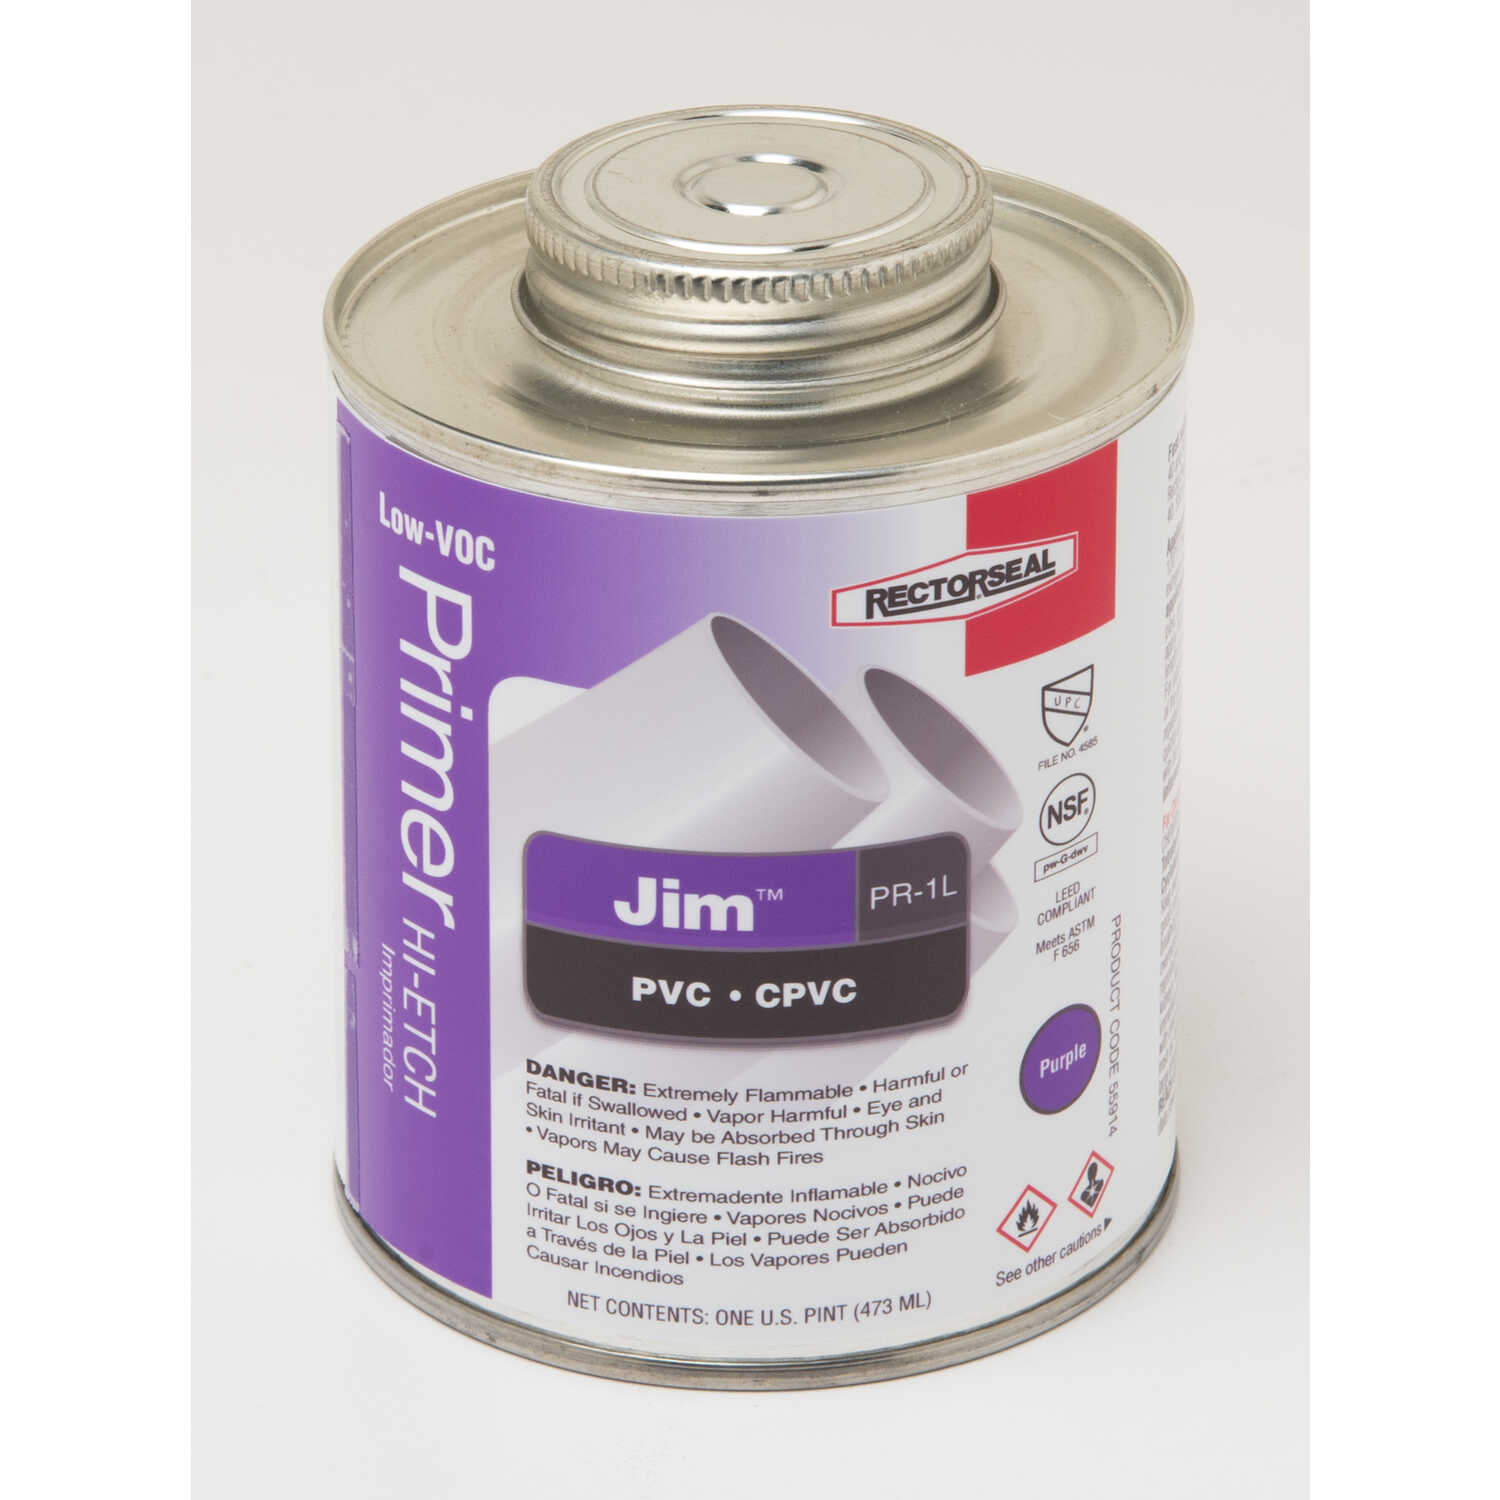 Rectorseal  Jim  Purple  Primer and Cement  For CPVC/PVC 16 oz.